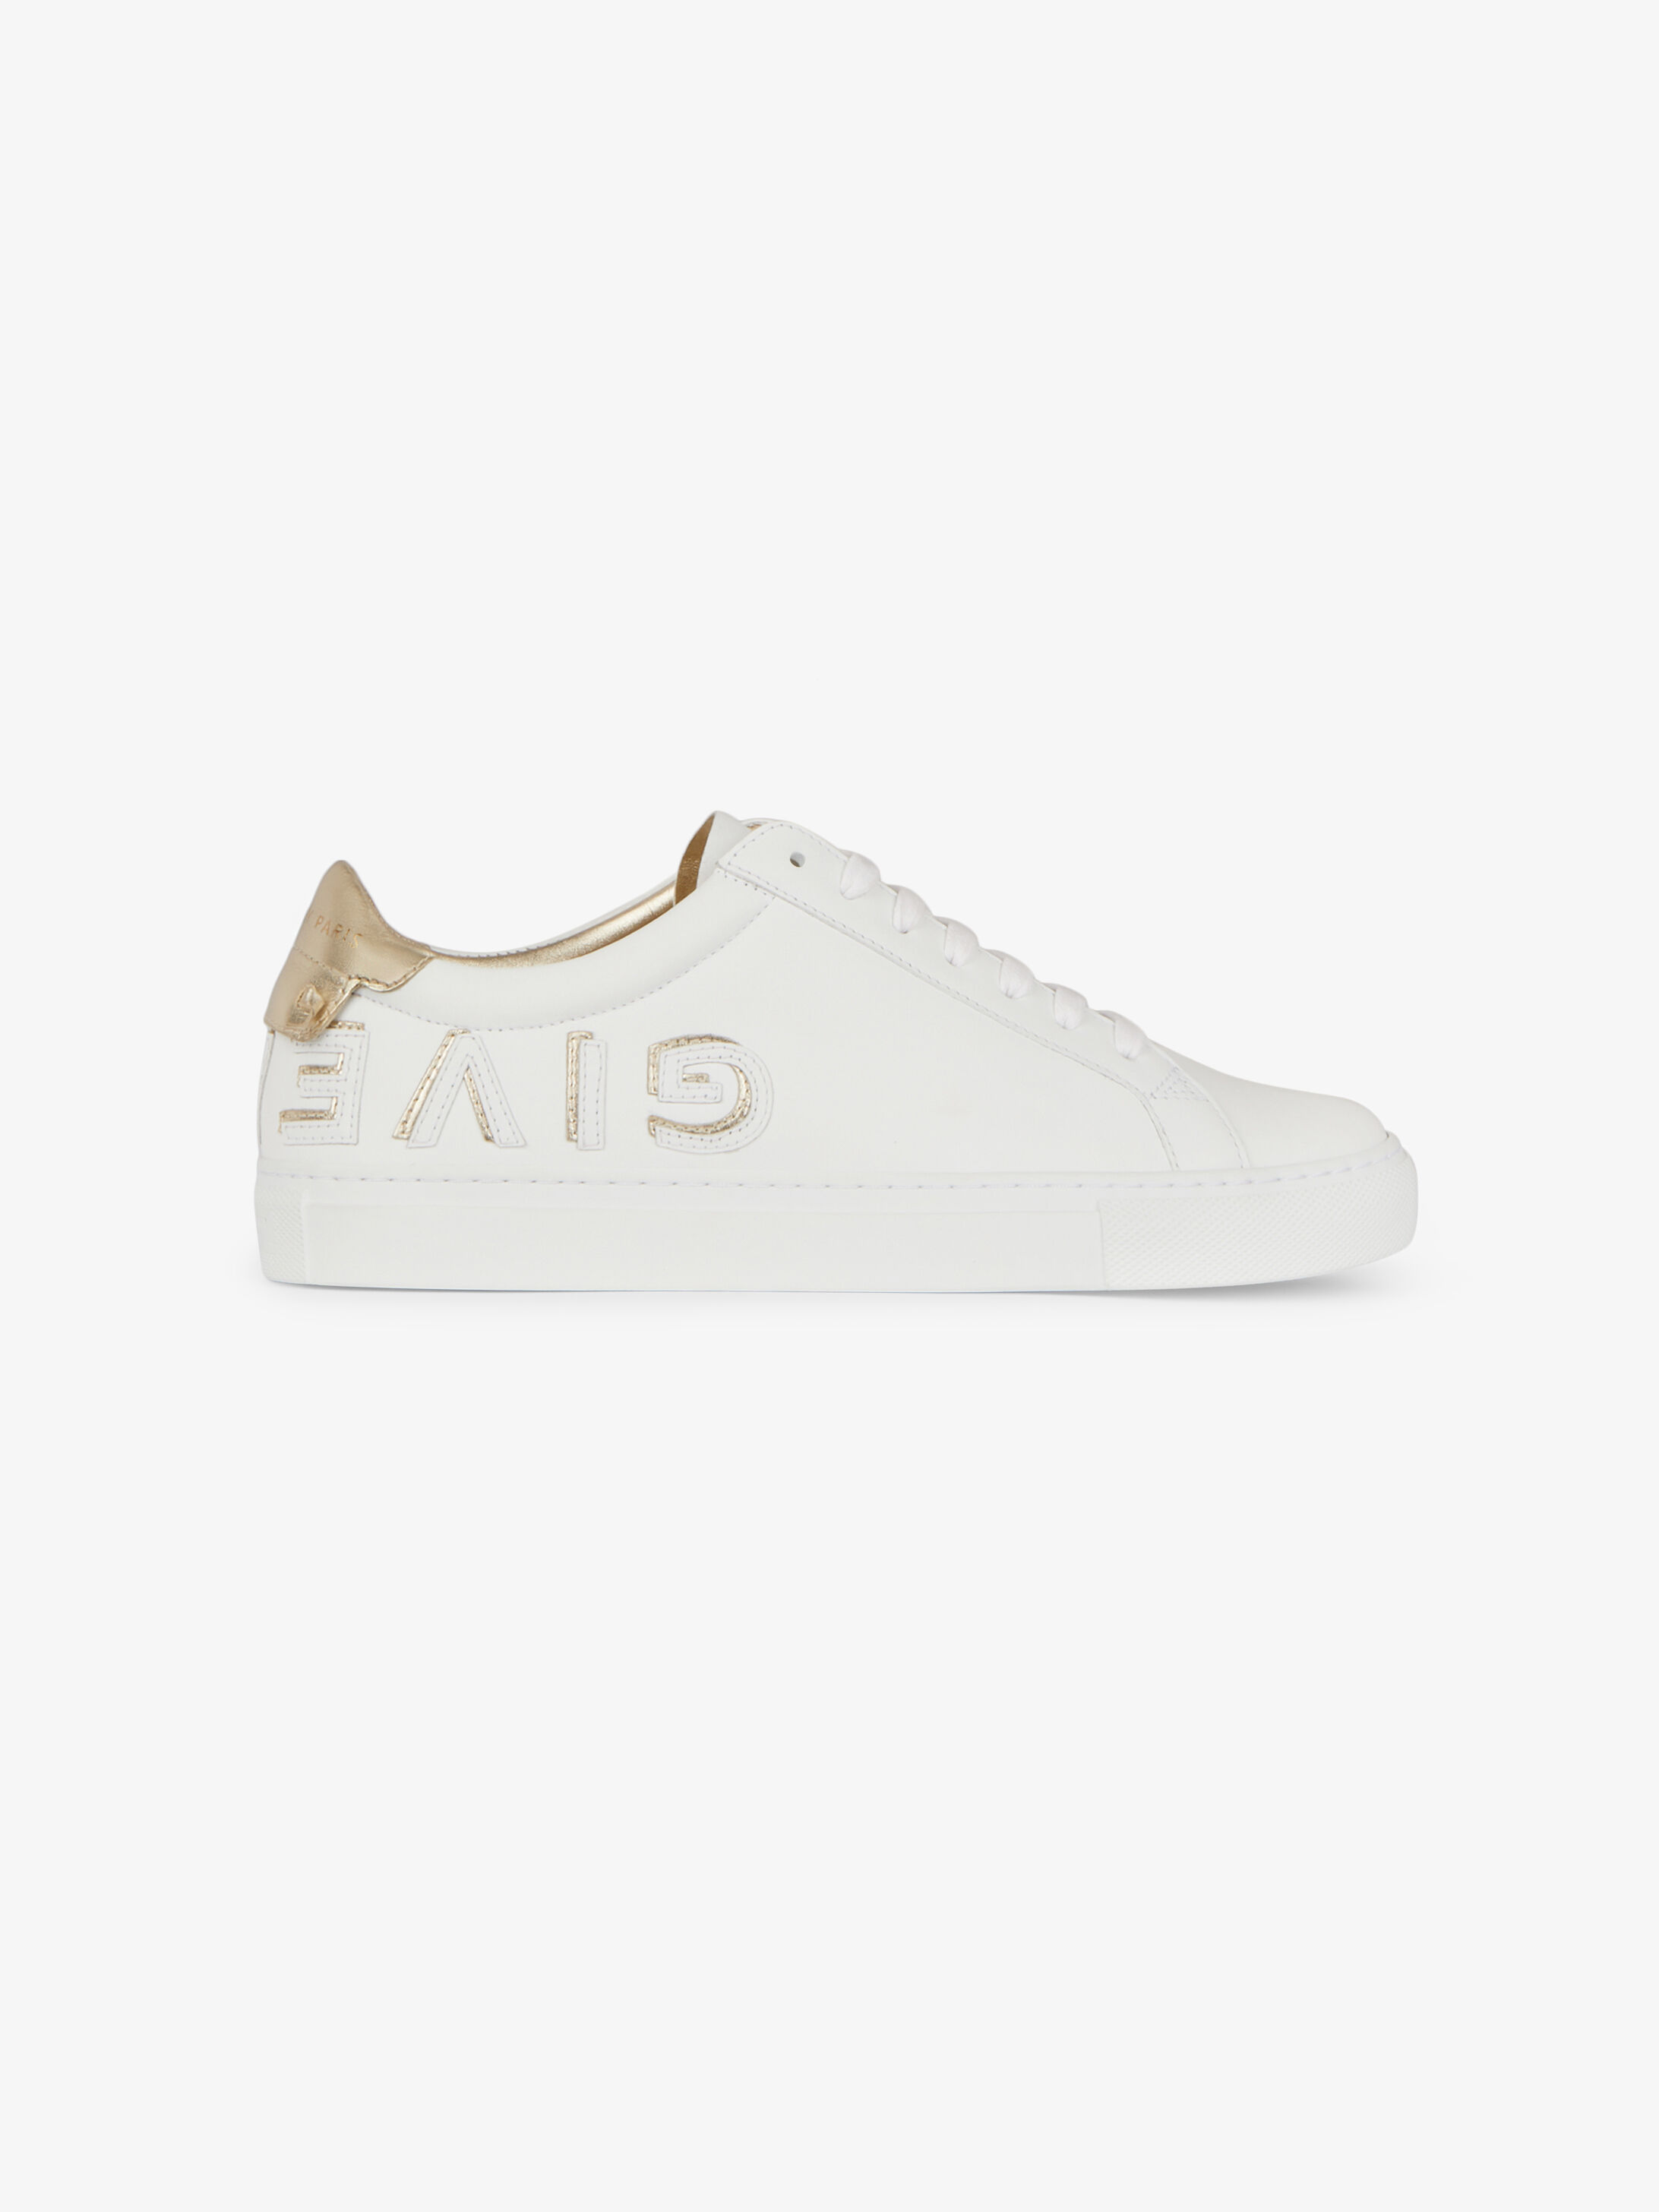 Women's Sneakers collection by Givenchy